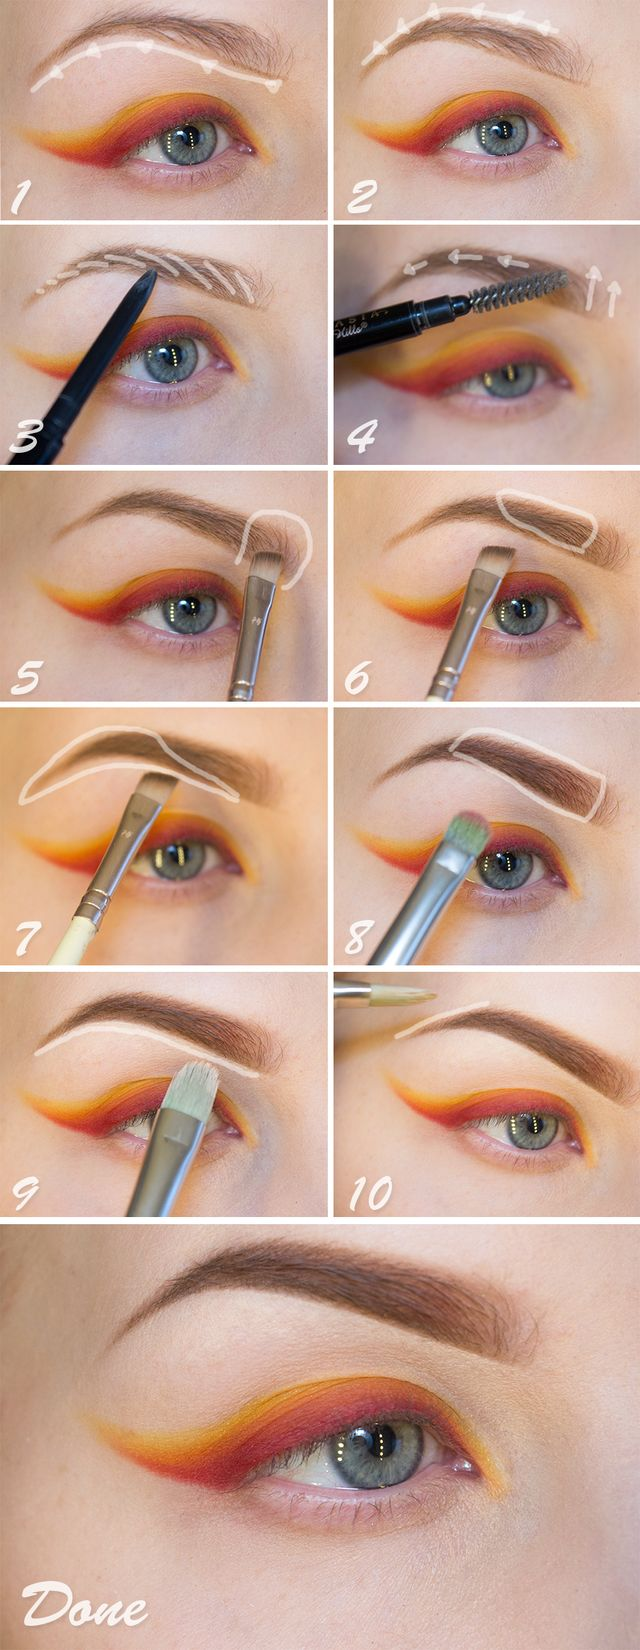 Bomb%20Brows%20%20tutorial